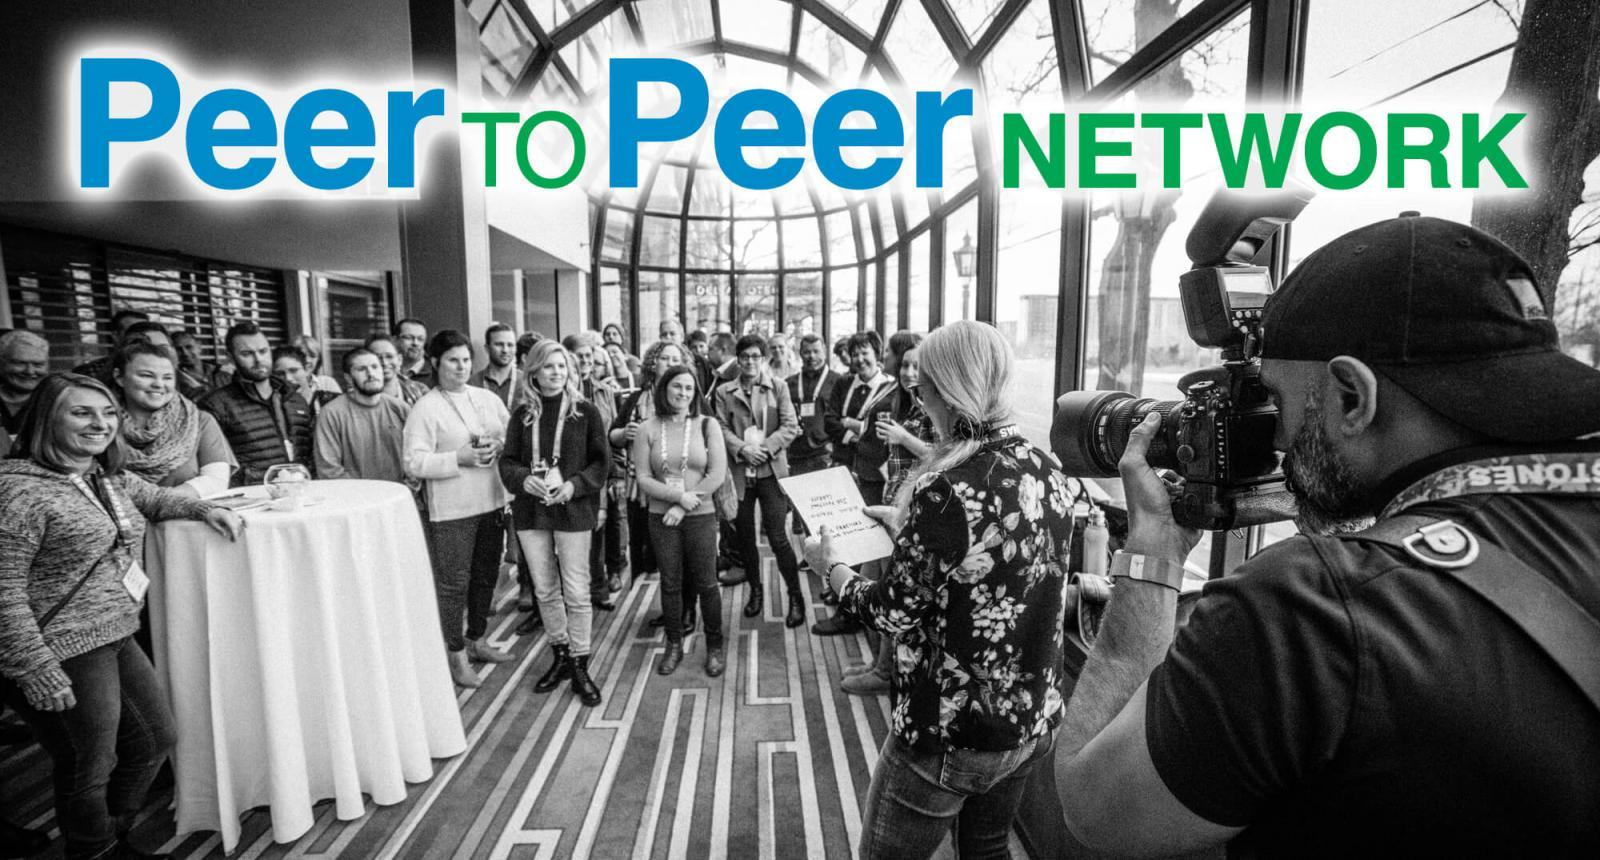 The power of people working together is what LO's Peer to Peer Network is all about.